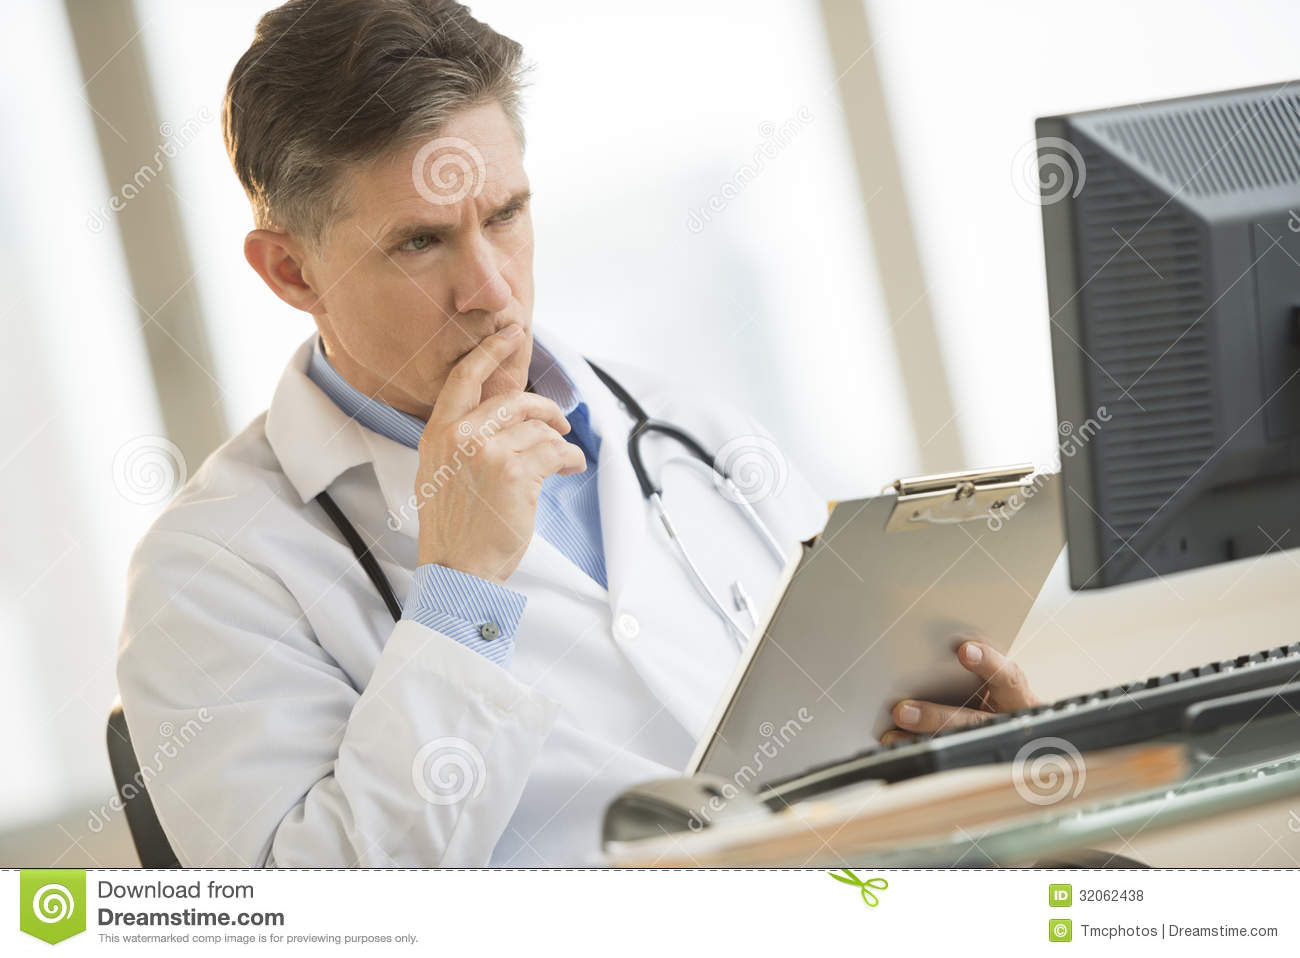 Serious Doctor Looking At Computer While Holding Clipboard